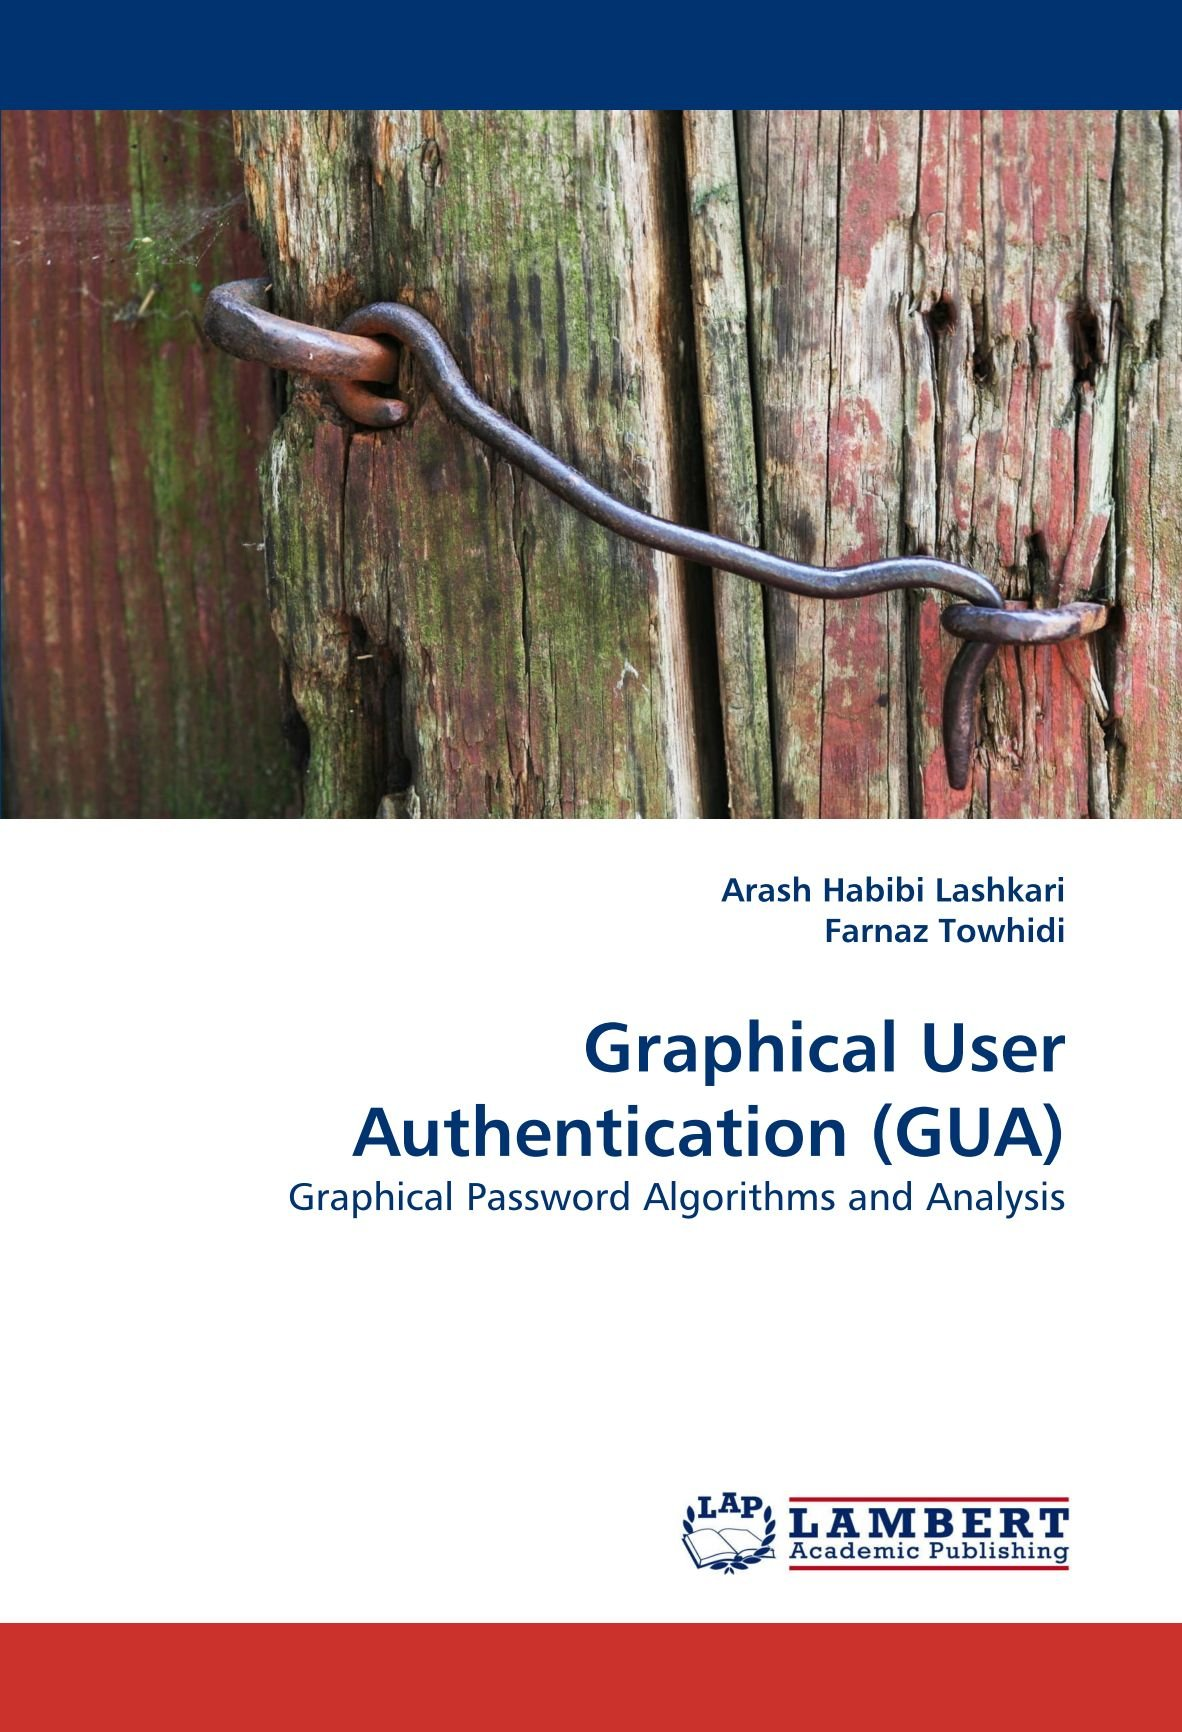 Graphical User Authentication (GUA): Graphical Password Algorithms and Analysis PDF